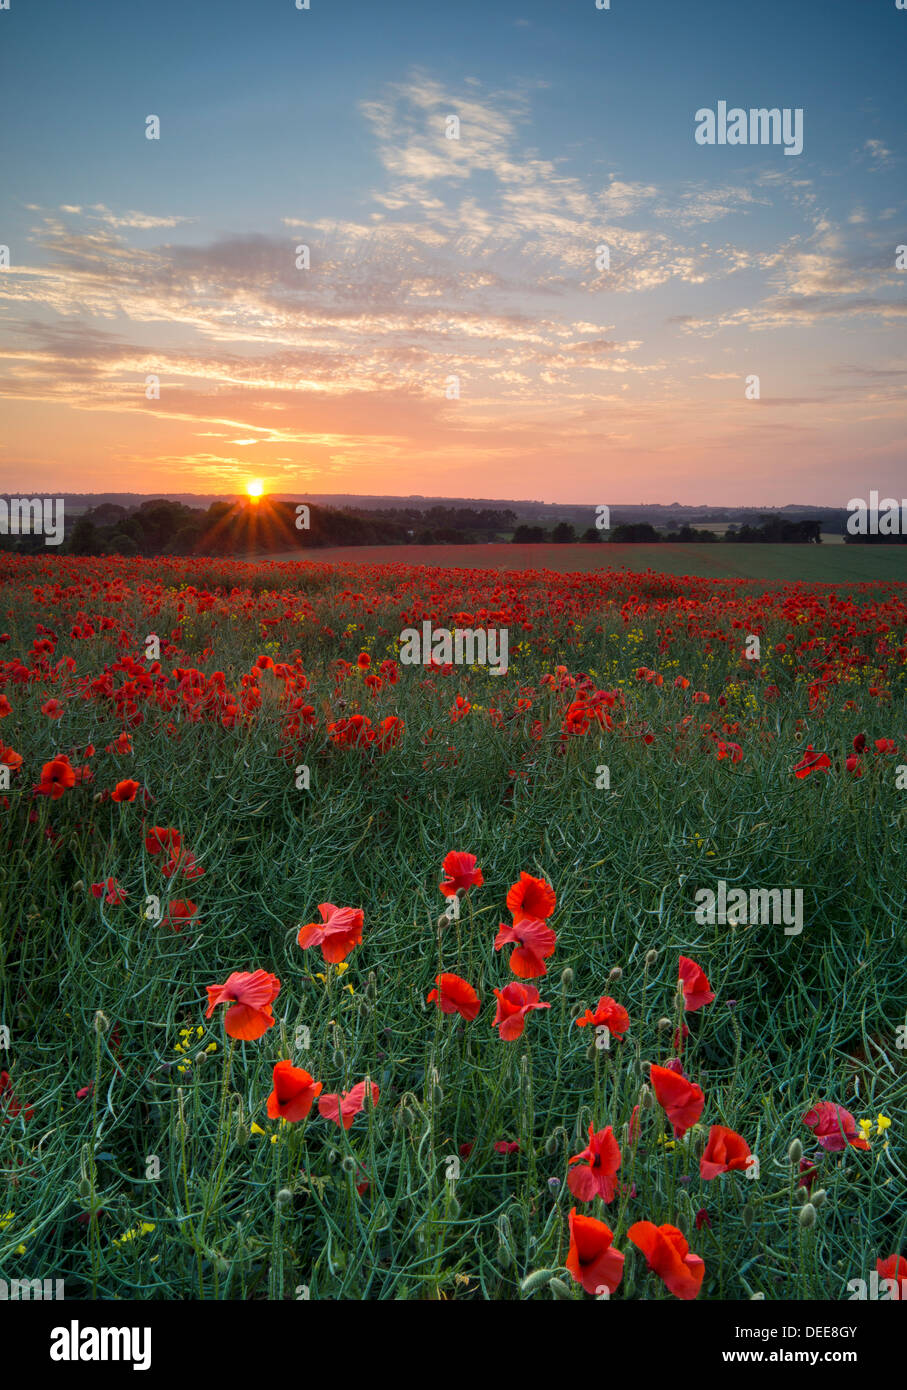 Poppies at sunset in an English field. 'At the going down of the sun and in the morning We will remember them.' - Stock Image